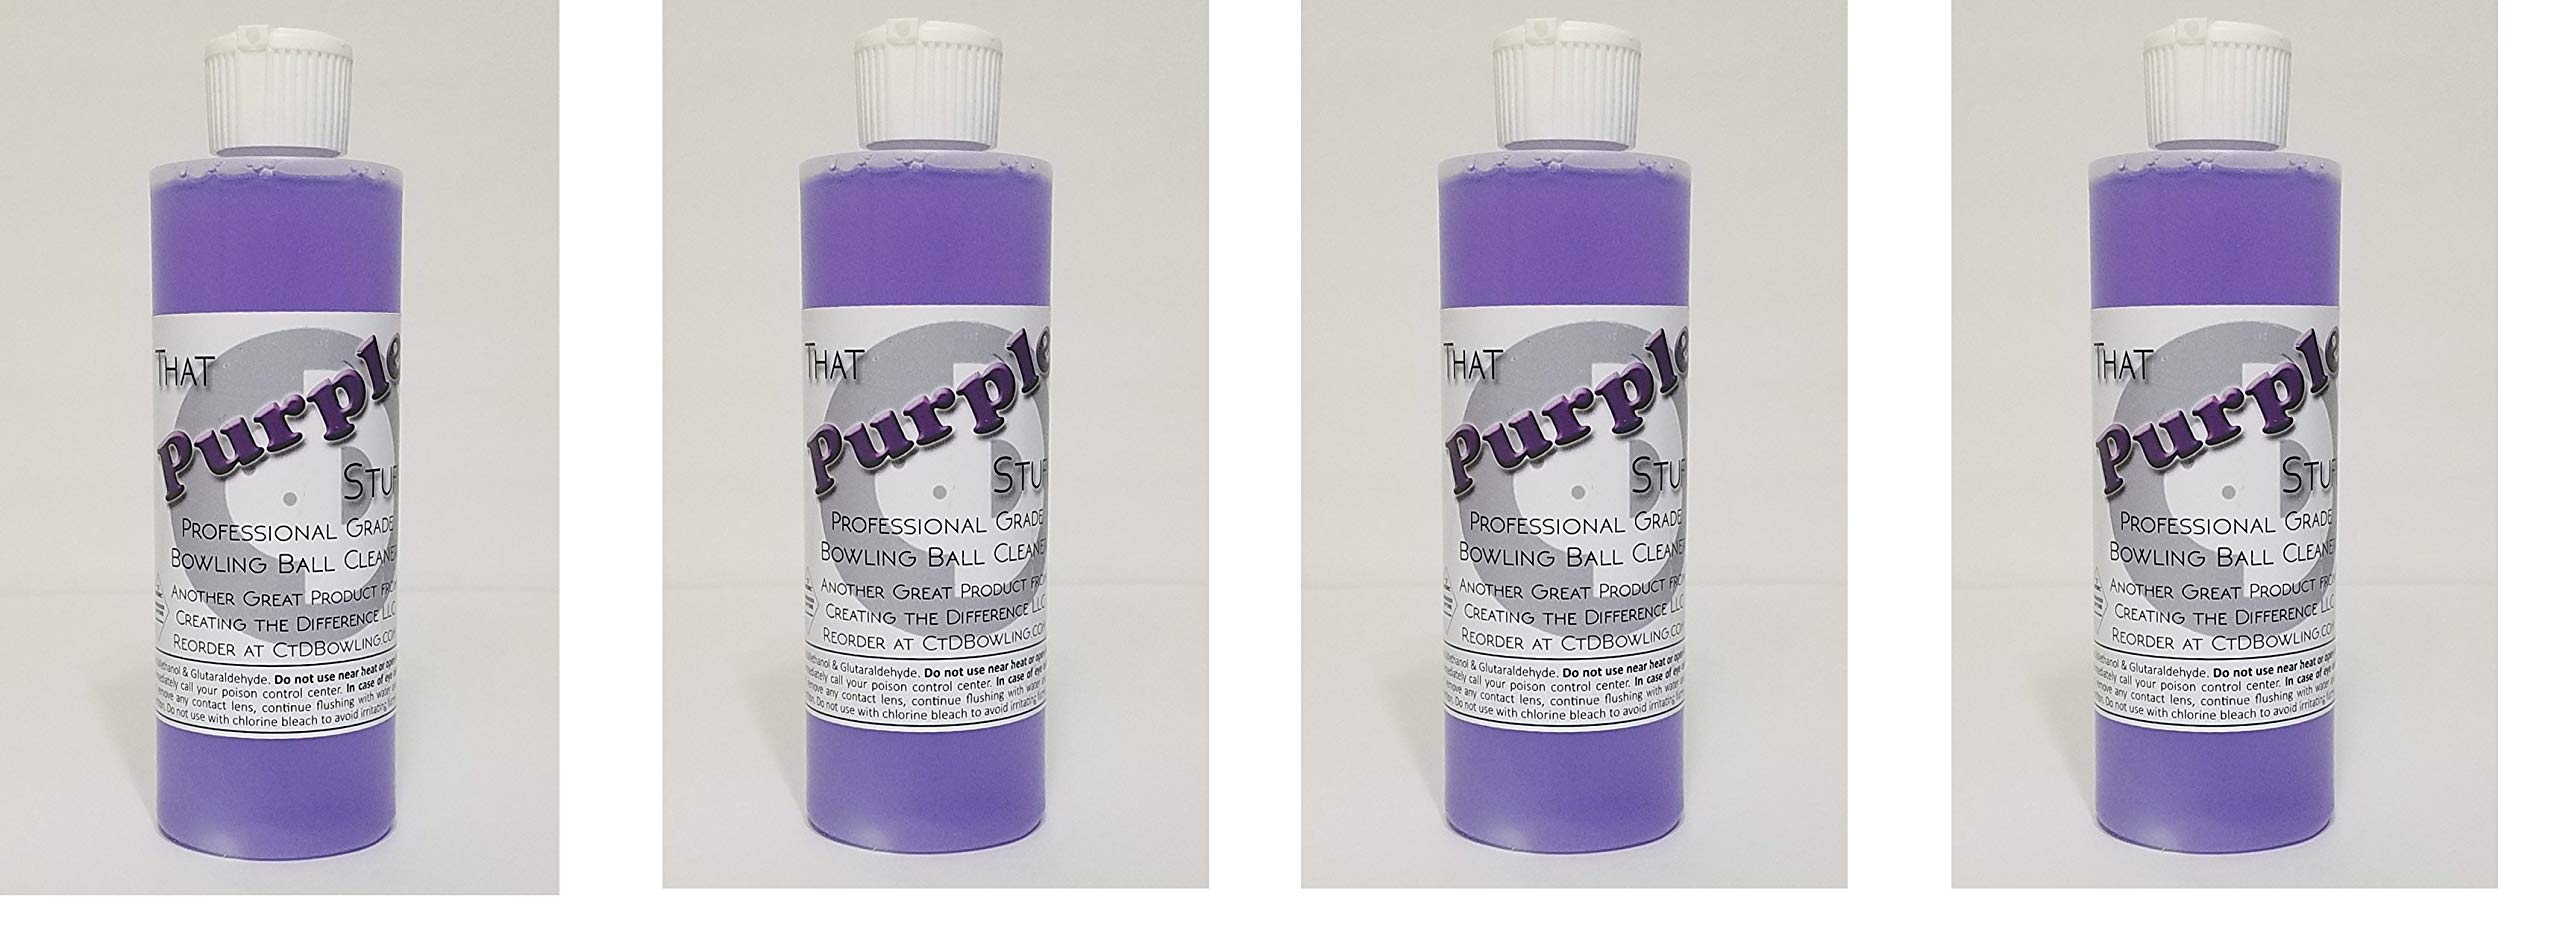 Creating the Difference That Purple Stuff Bowling Ball Cleaner | 8 oz Bottle (4-Pack)